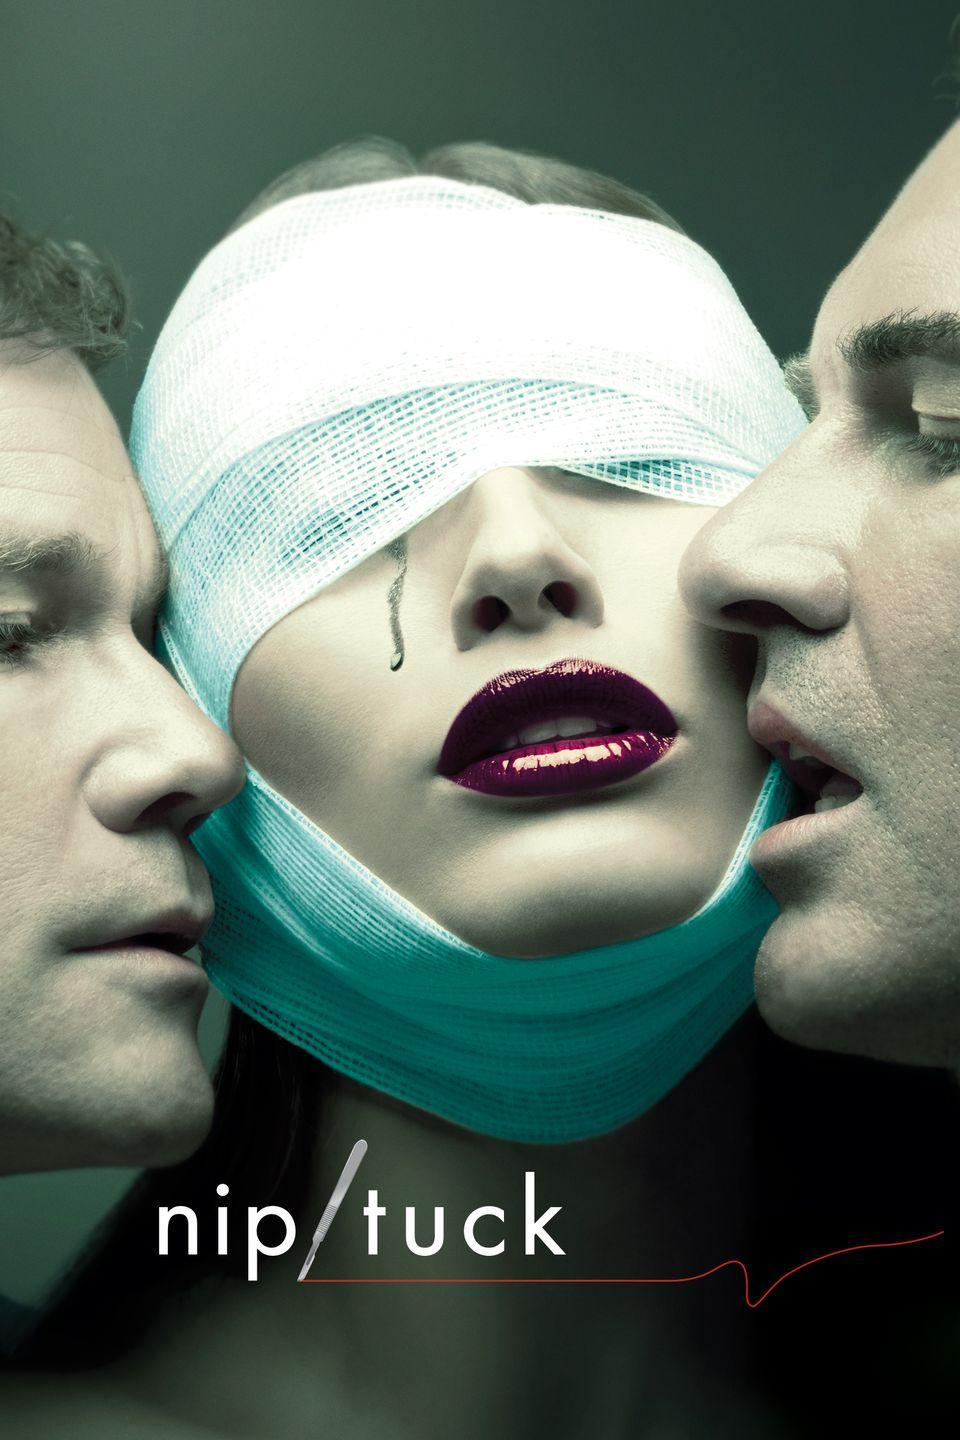 """<p><strong>Air date: </strong>2003-2010 on FX</p><p>Murphy's hit series about plastic surgery showcased his affinity for genre jumprope, crossing over between a tense medical drama, pulpy crime thriller, and dark satire frequently over its six seasons. The lead characters of Sean McNamara (Dylan Walsh) and Christian Troy (Julian McMahon) are arguably among the most compelling of Murphy's creations.</p><p> As with <em>Popular, </em>Murphy was involved in the series creation, writing, and producing, while also directing eight episodes.<br><br></p><p><a class=""""link rapid-noclick-resp"""" href=""""https://go.redirectingat.com?id=74968X1596630&url=https%3A%2F%2Fwww.hulu.com%2Fseries%2Fniptuck-b145d293-21c6-41c8-a852-02c6ebb0bf14&sref=https%3A%2F%2Fwww.oprahdaily.com%2Fentertainment%2Ftv-movies%2Fg36677462%2Fryan-murphy-tv-shows-list%2F"""" rel=""""nofollow noopener"""" target=""""_blank"""" data-ylk=""""slk:WATCH NOW"""">WATCH NOW</a></p>"""